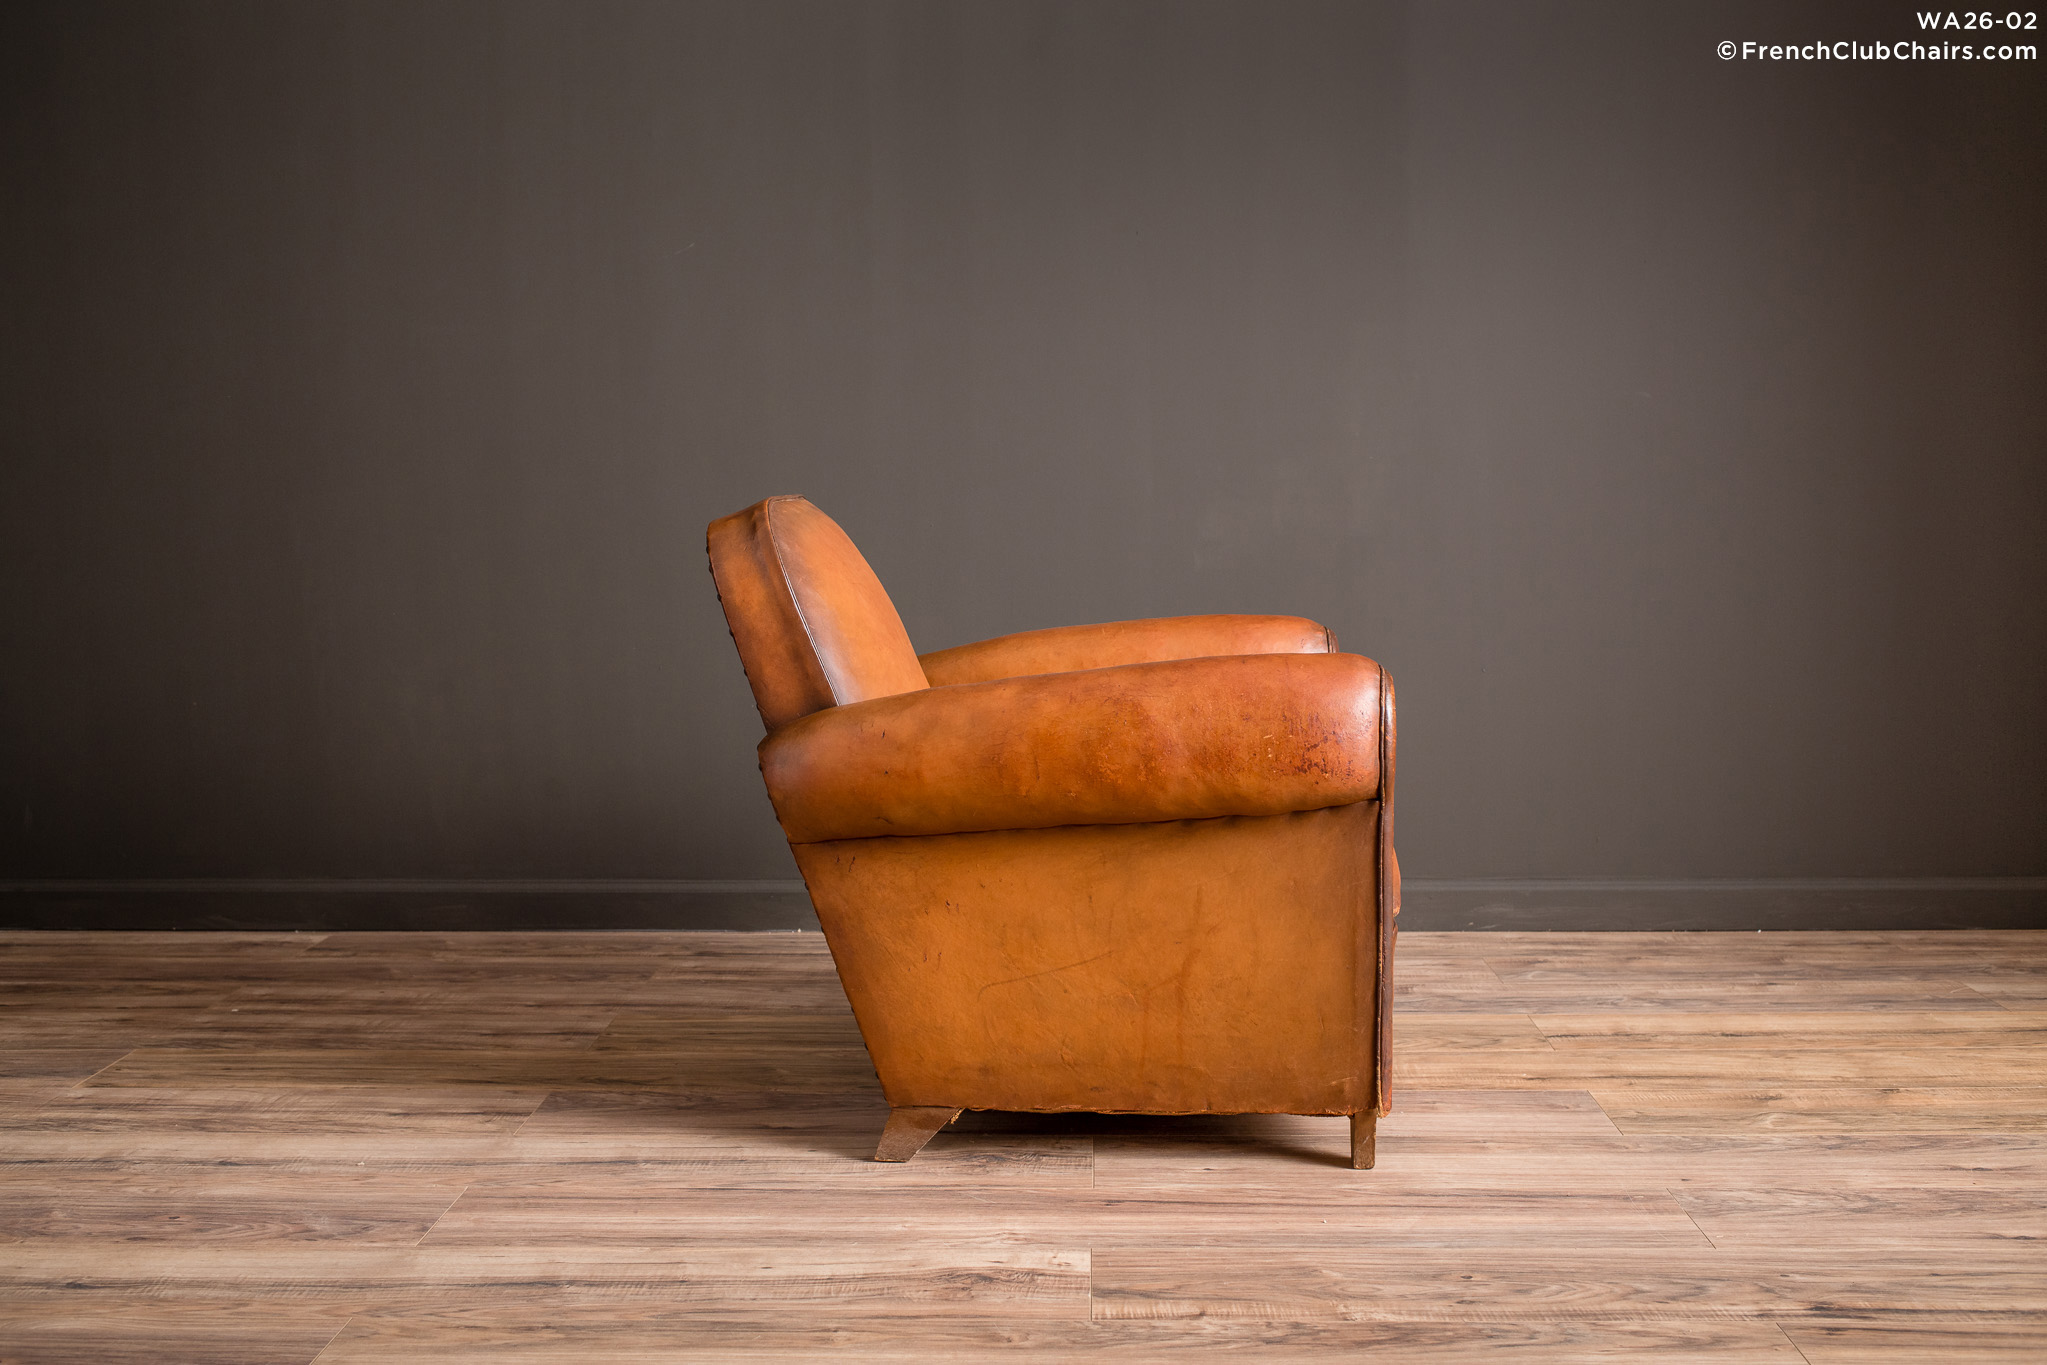 WA_26-02_Vesoul_Library_Solo_R_3RT-v01-williams-antiks-leather-french-club-chair-wa_fcccom